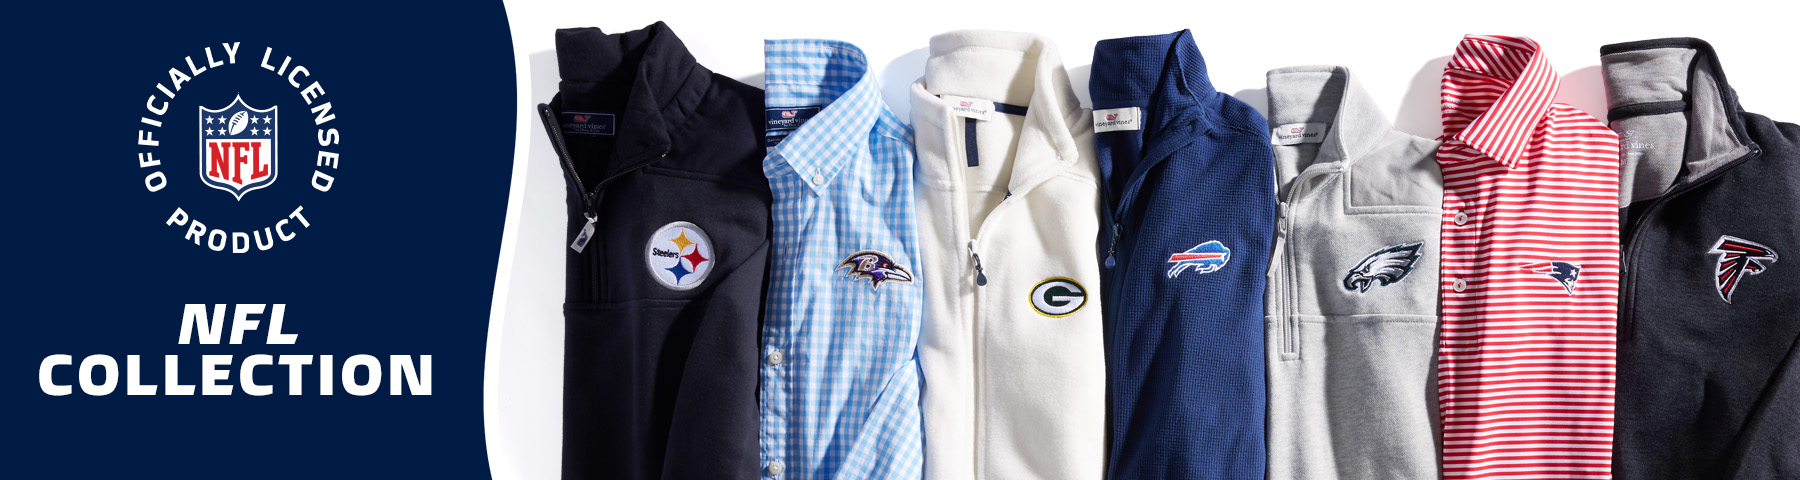 6a9552b03 You can now customize vineyard vines official NFL products! Start by choosing  your team below